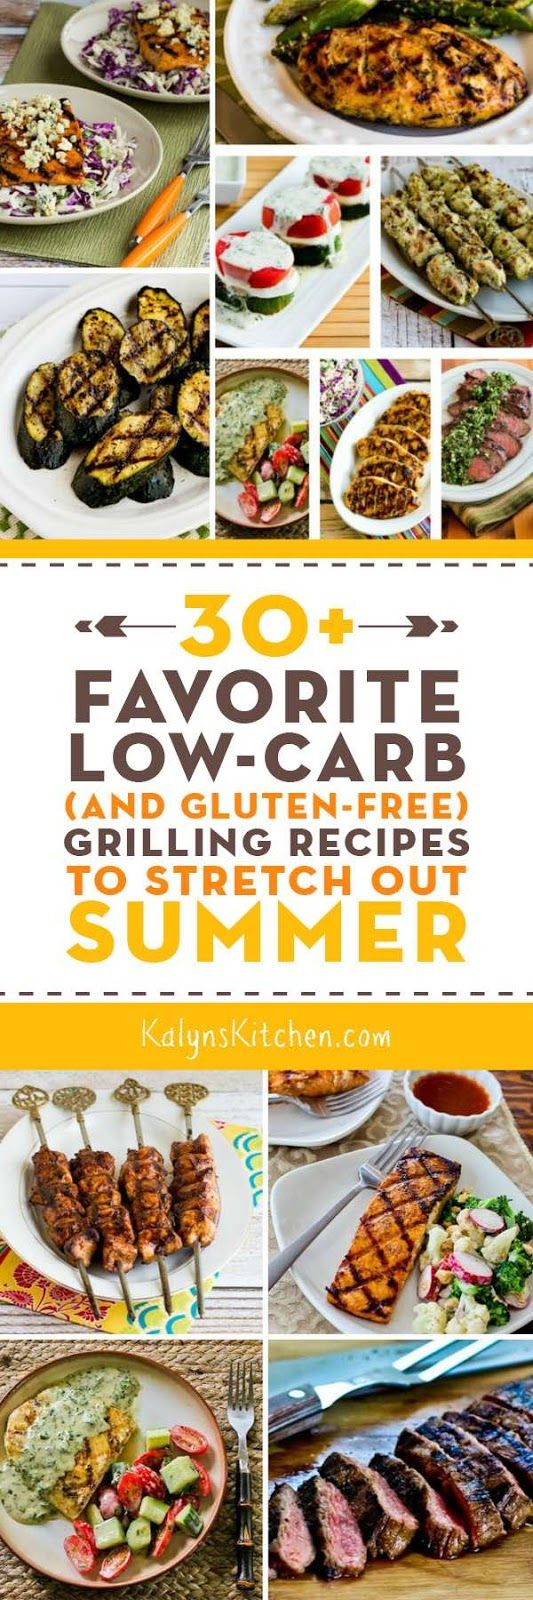 There's still plenty of grilling weather left even if summer is winding down, so here are my 30+ Favorite Low-Carb Grilling Recipes to Stretch Out Summer! [found on KalynsKitchen.com.]